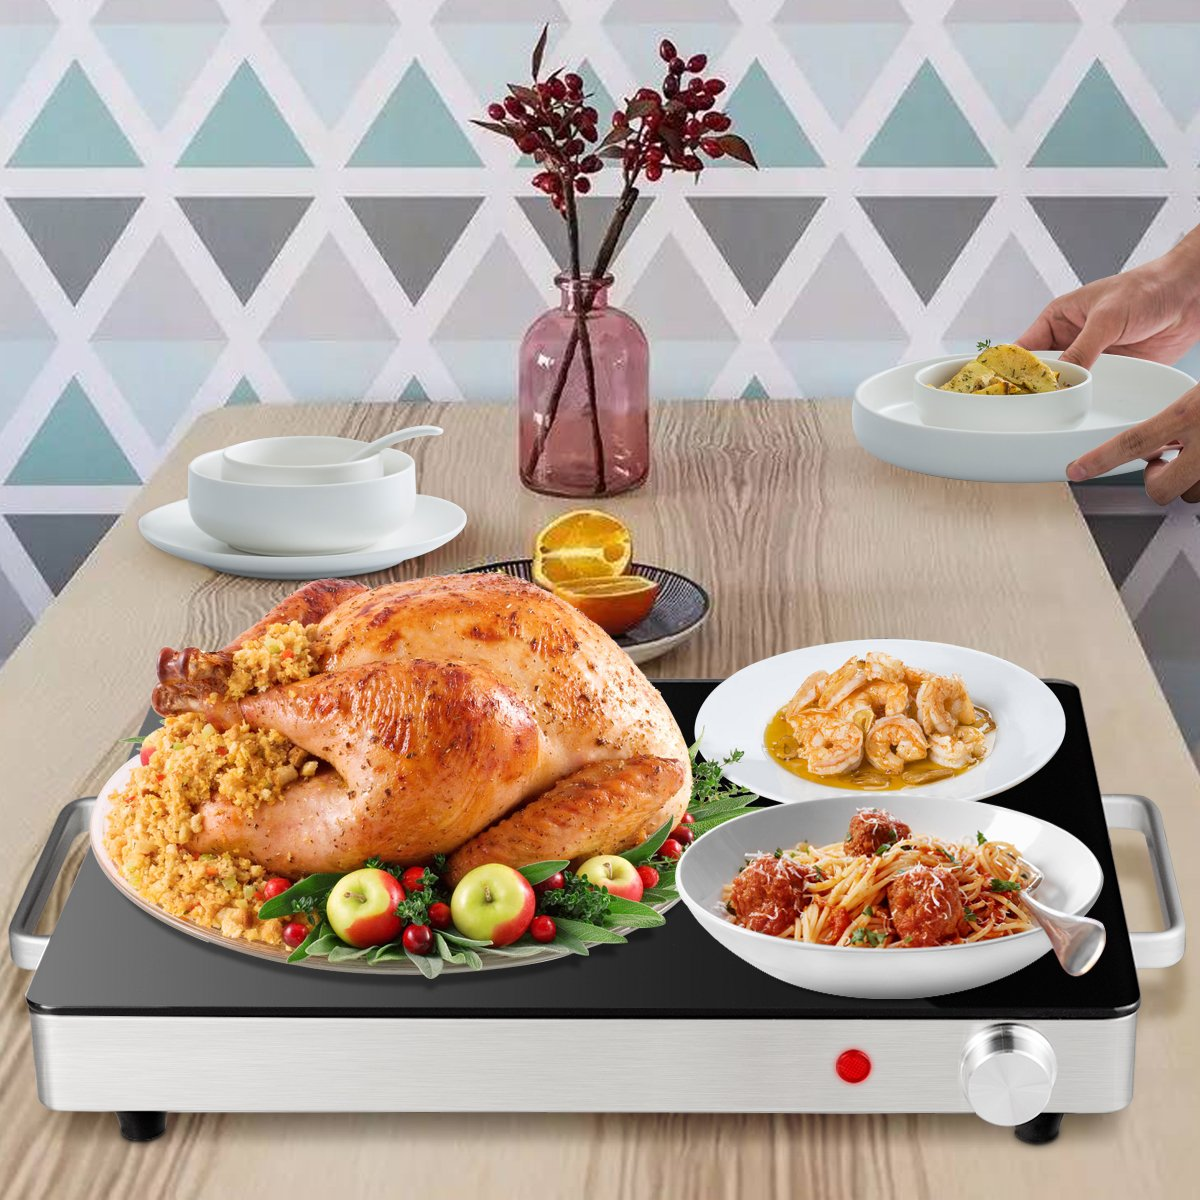 Giantex Warming Tray with Adjustable Temperature Control Perfect For Buffets, Restaurants and Home Dinners by Giantex (Image #3)